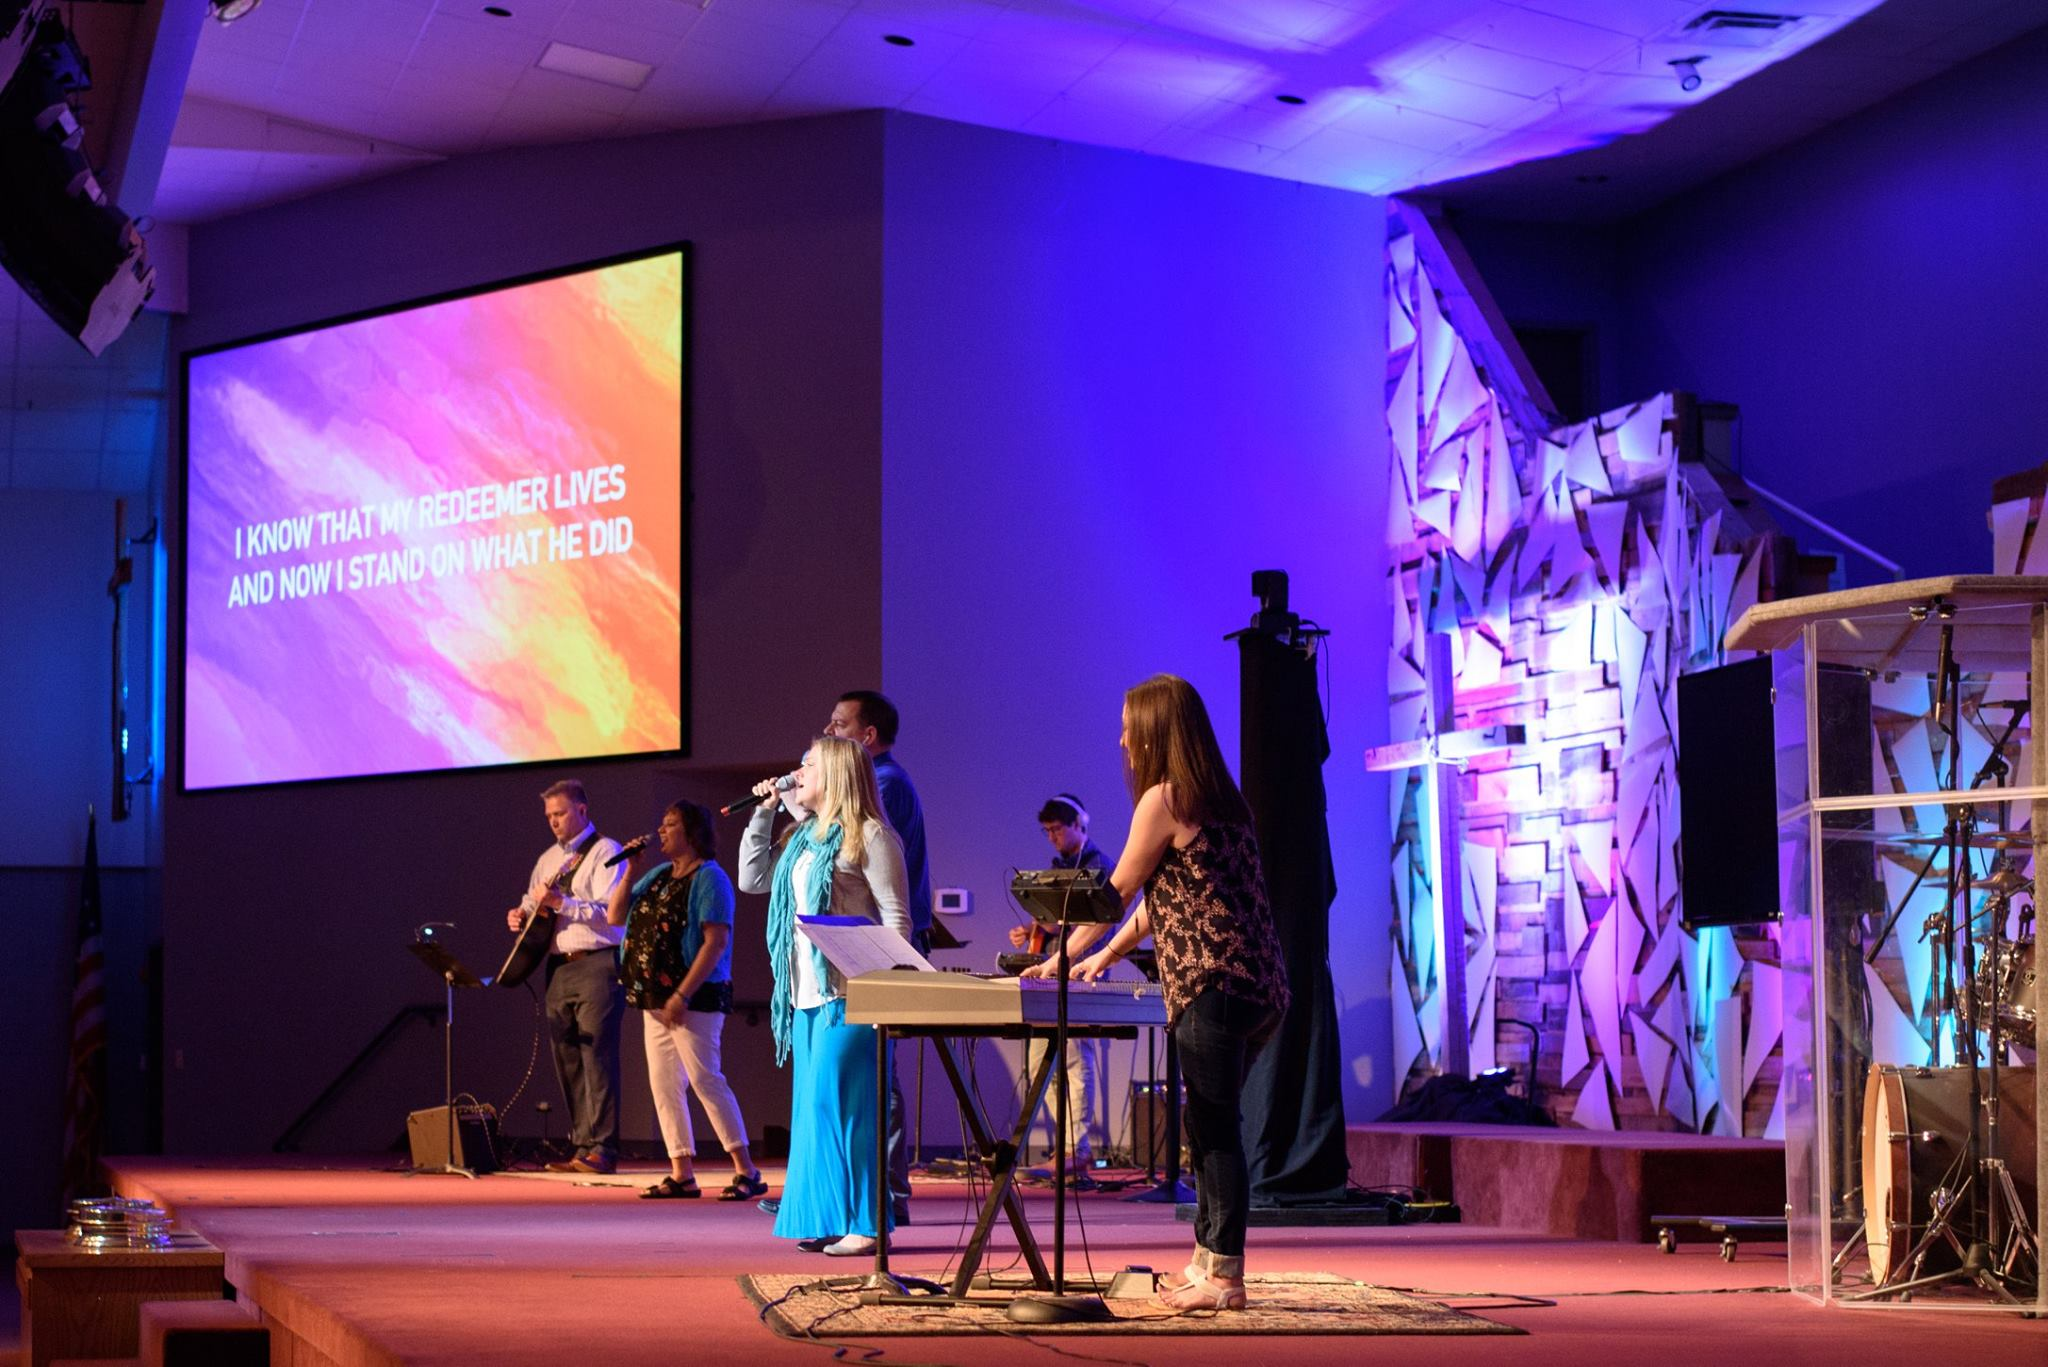 Worship - Help create an atmosphere where people can experience the presence of God. Join the Worship Team as a musician or vocalist, operate cameras, lights, screens, sound or video to help support our weekly worship gatherings.